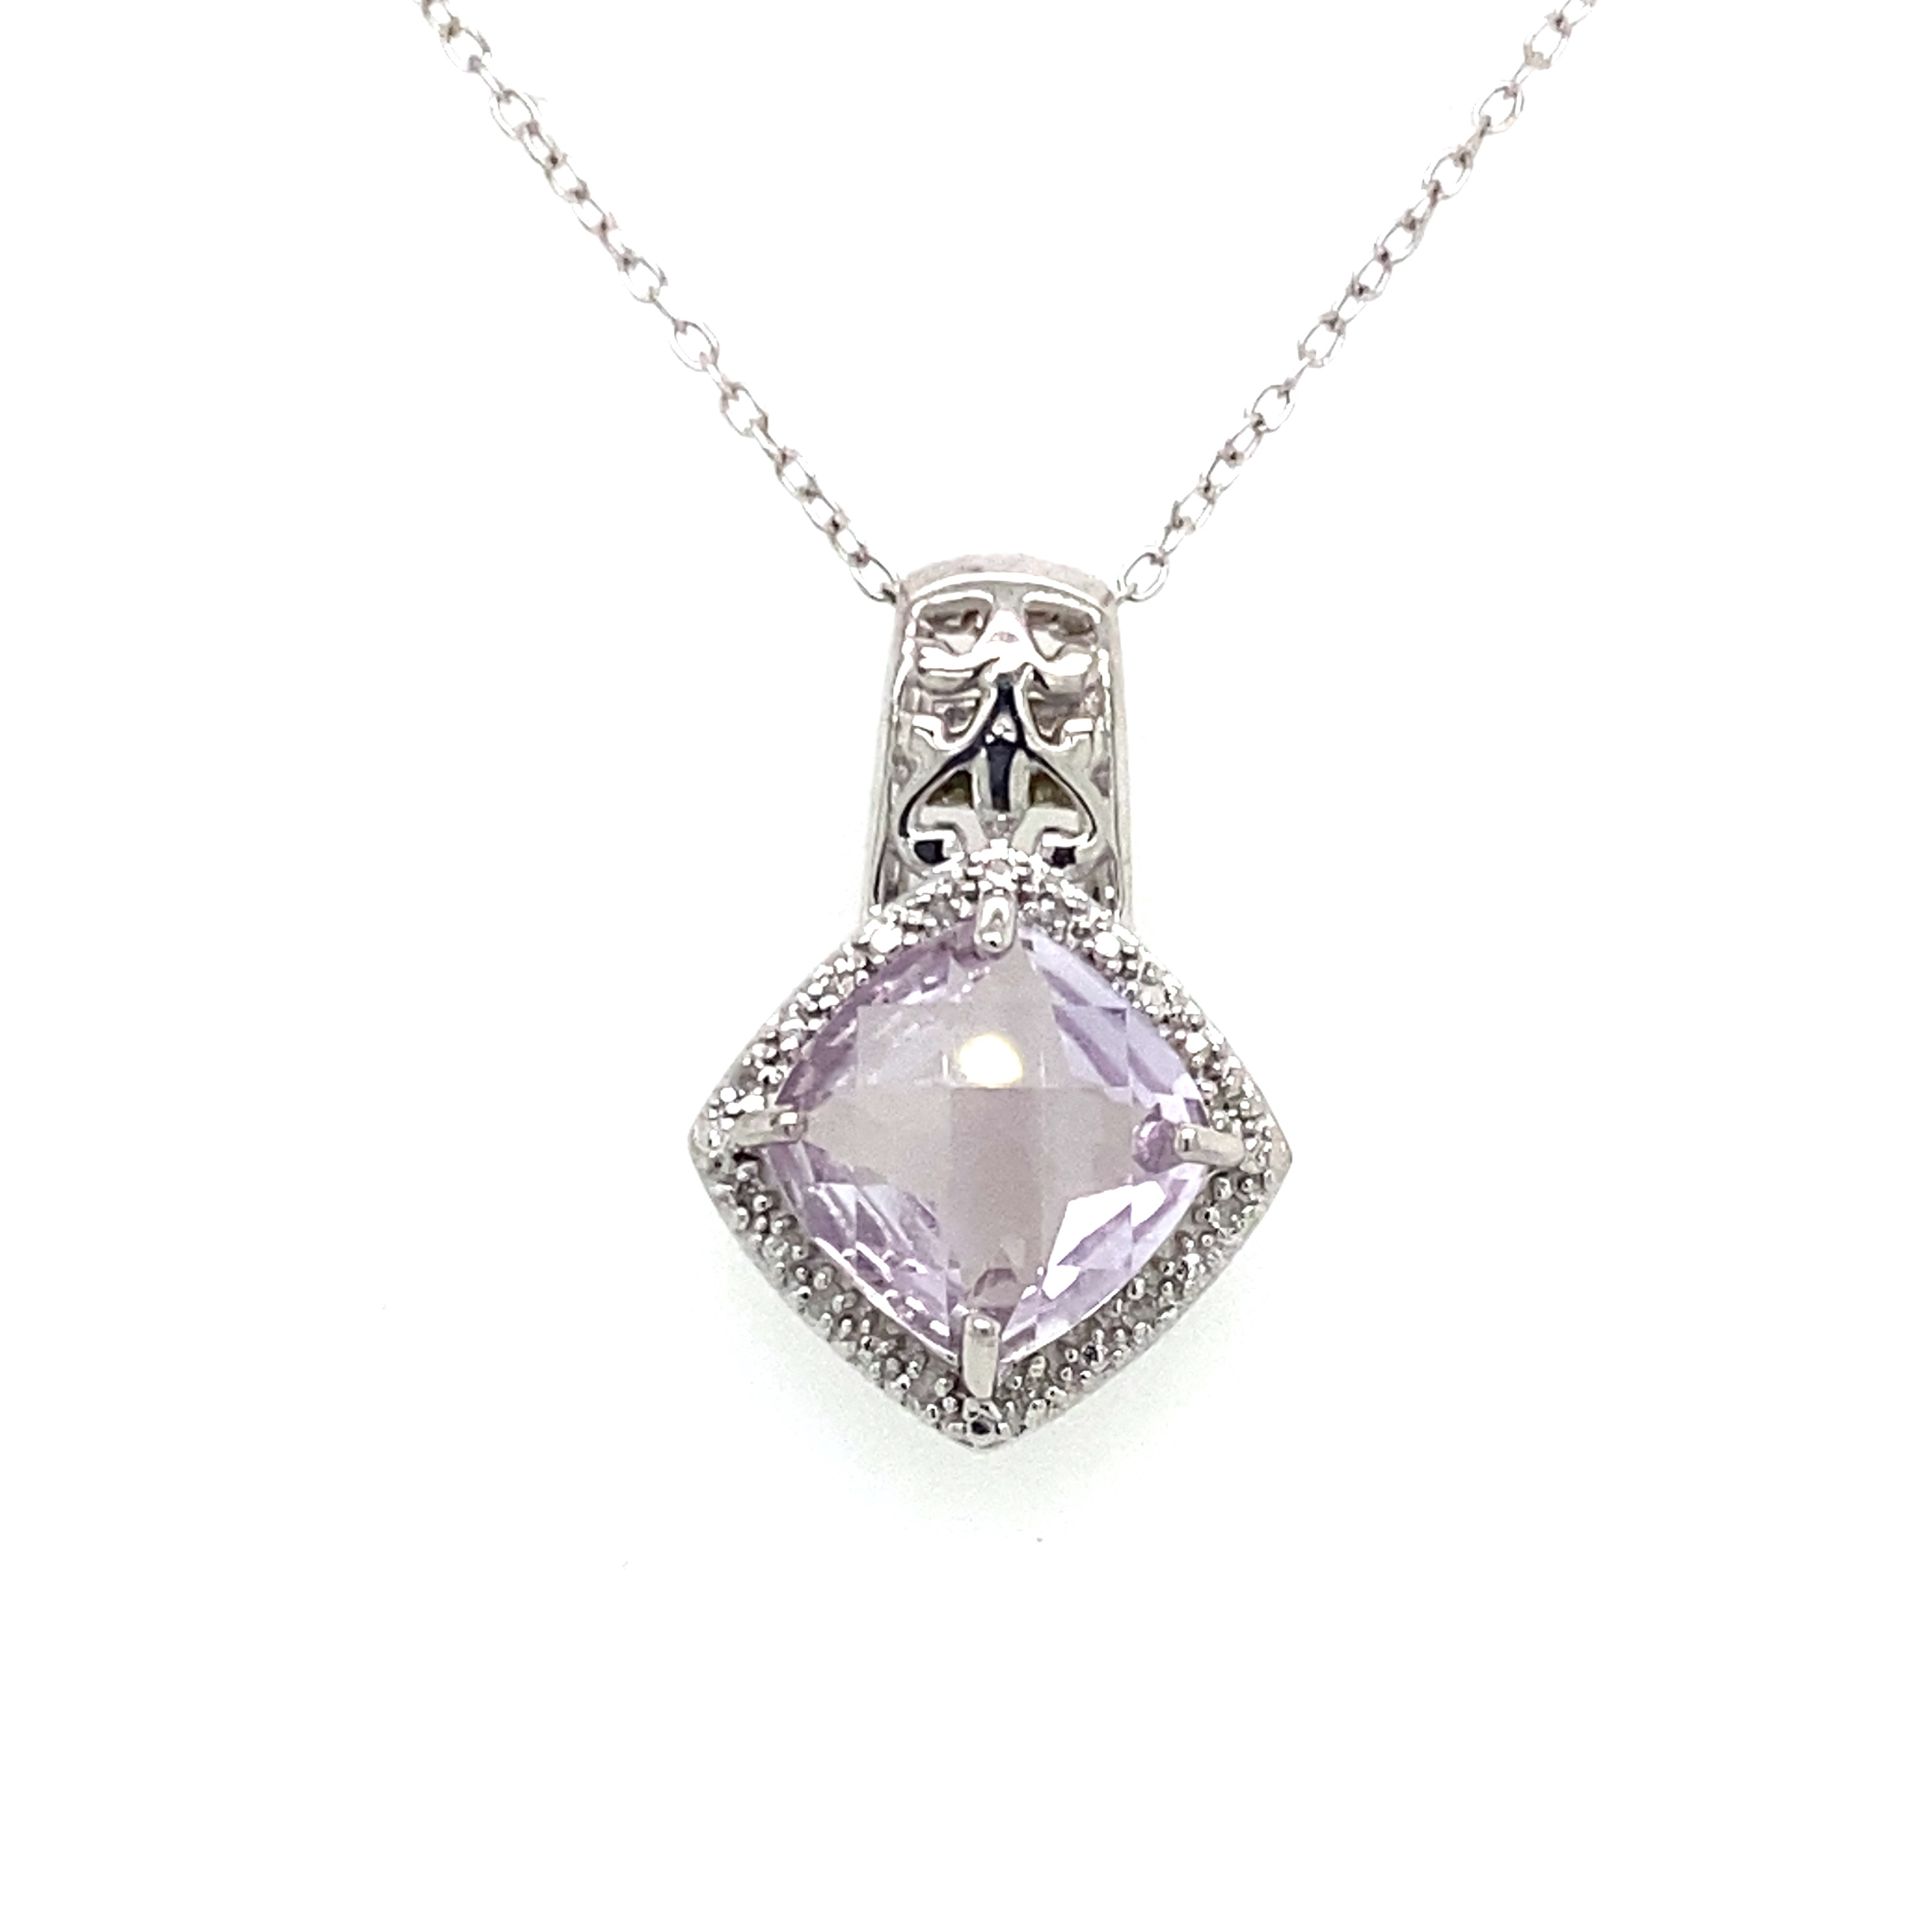 Sterling Silver, Diamond and Pink Quartz Pendant